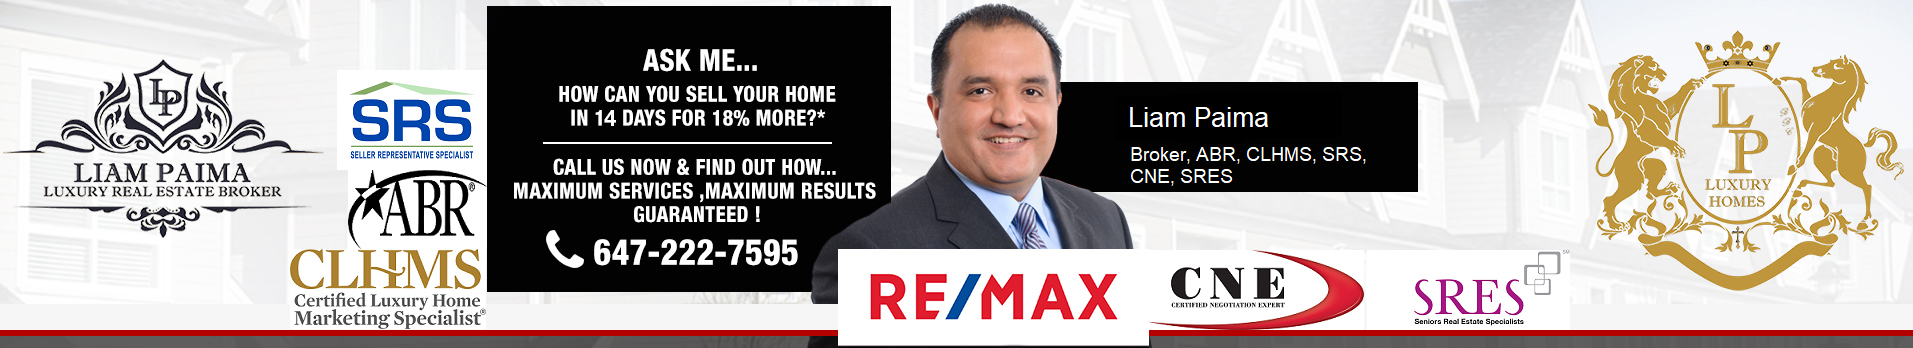 #1 Low Commission Real Estate Agent With Best Low Real Estate Commission Service In Toronto, Vaughan, Kleinburg, Oakville, Richmond Hill, Mississauga, Brampton, Milton, Caledon, Georgetown, Burlington, Orangeville, Markham.